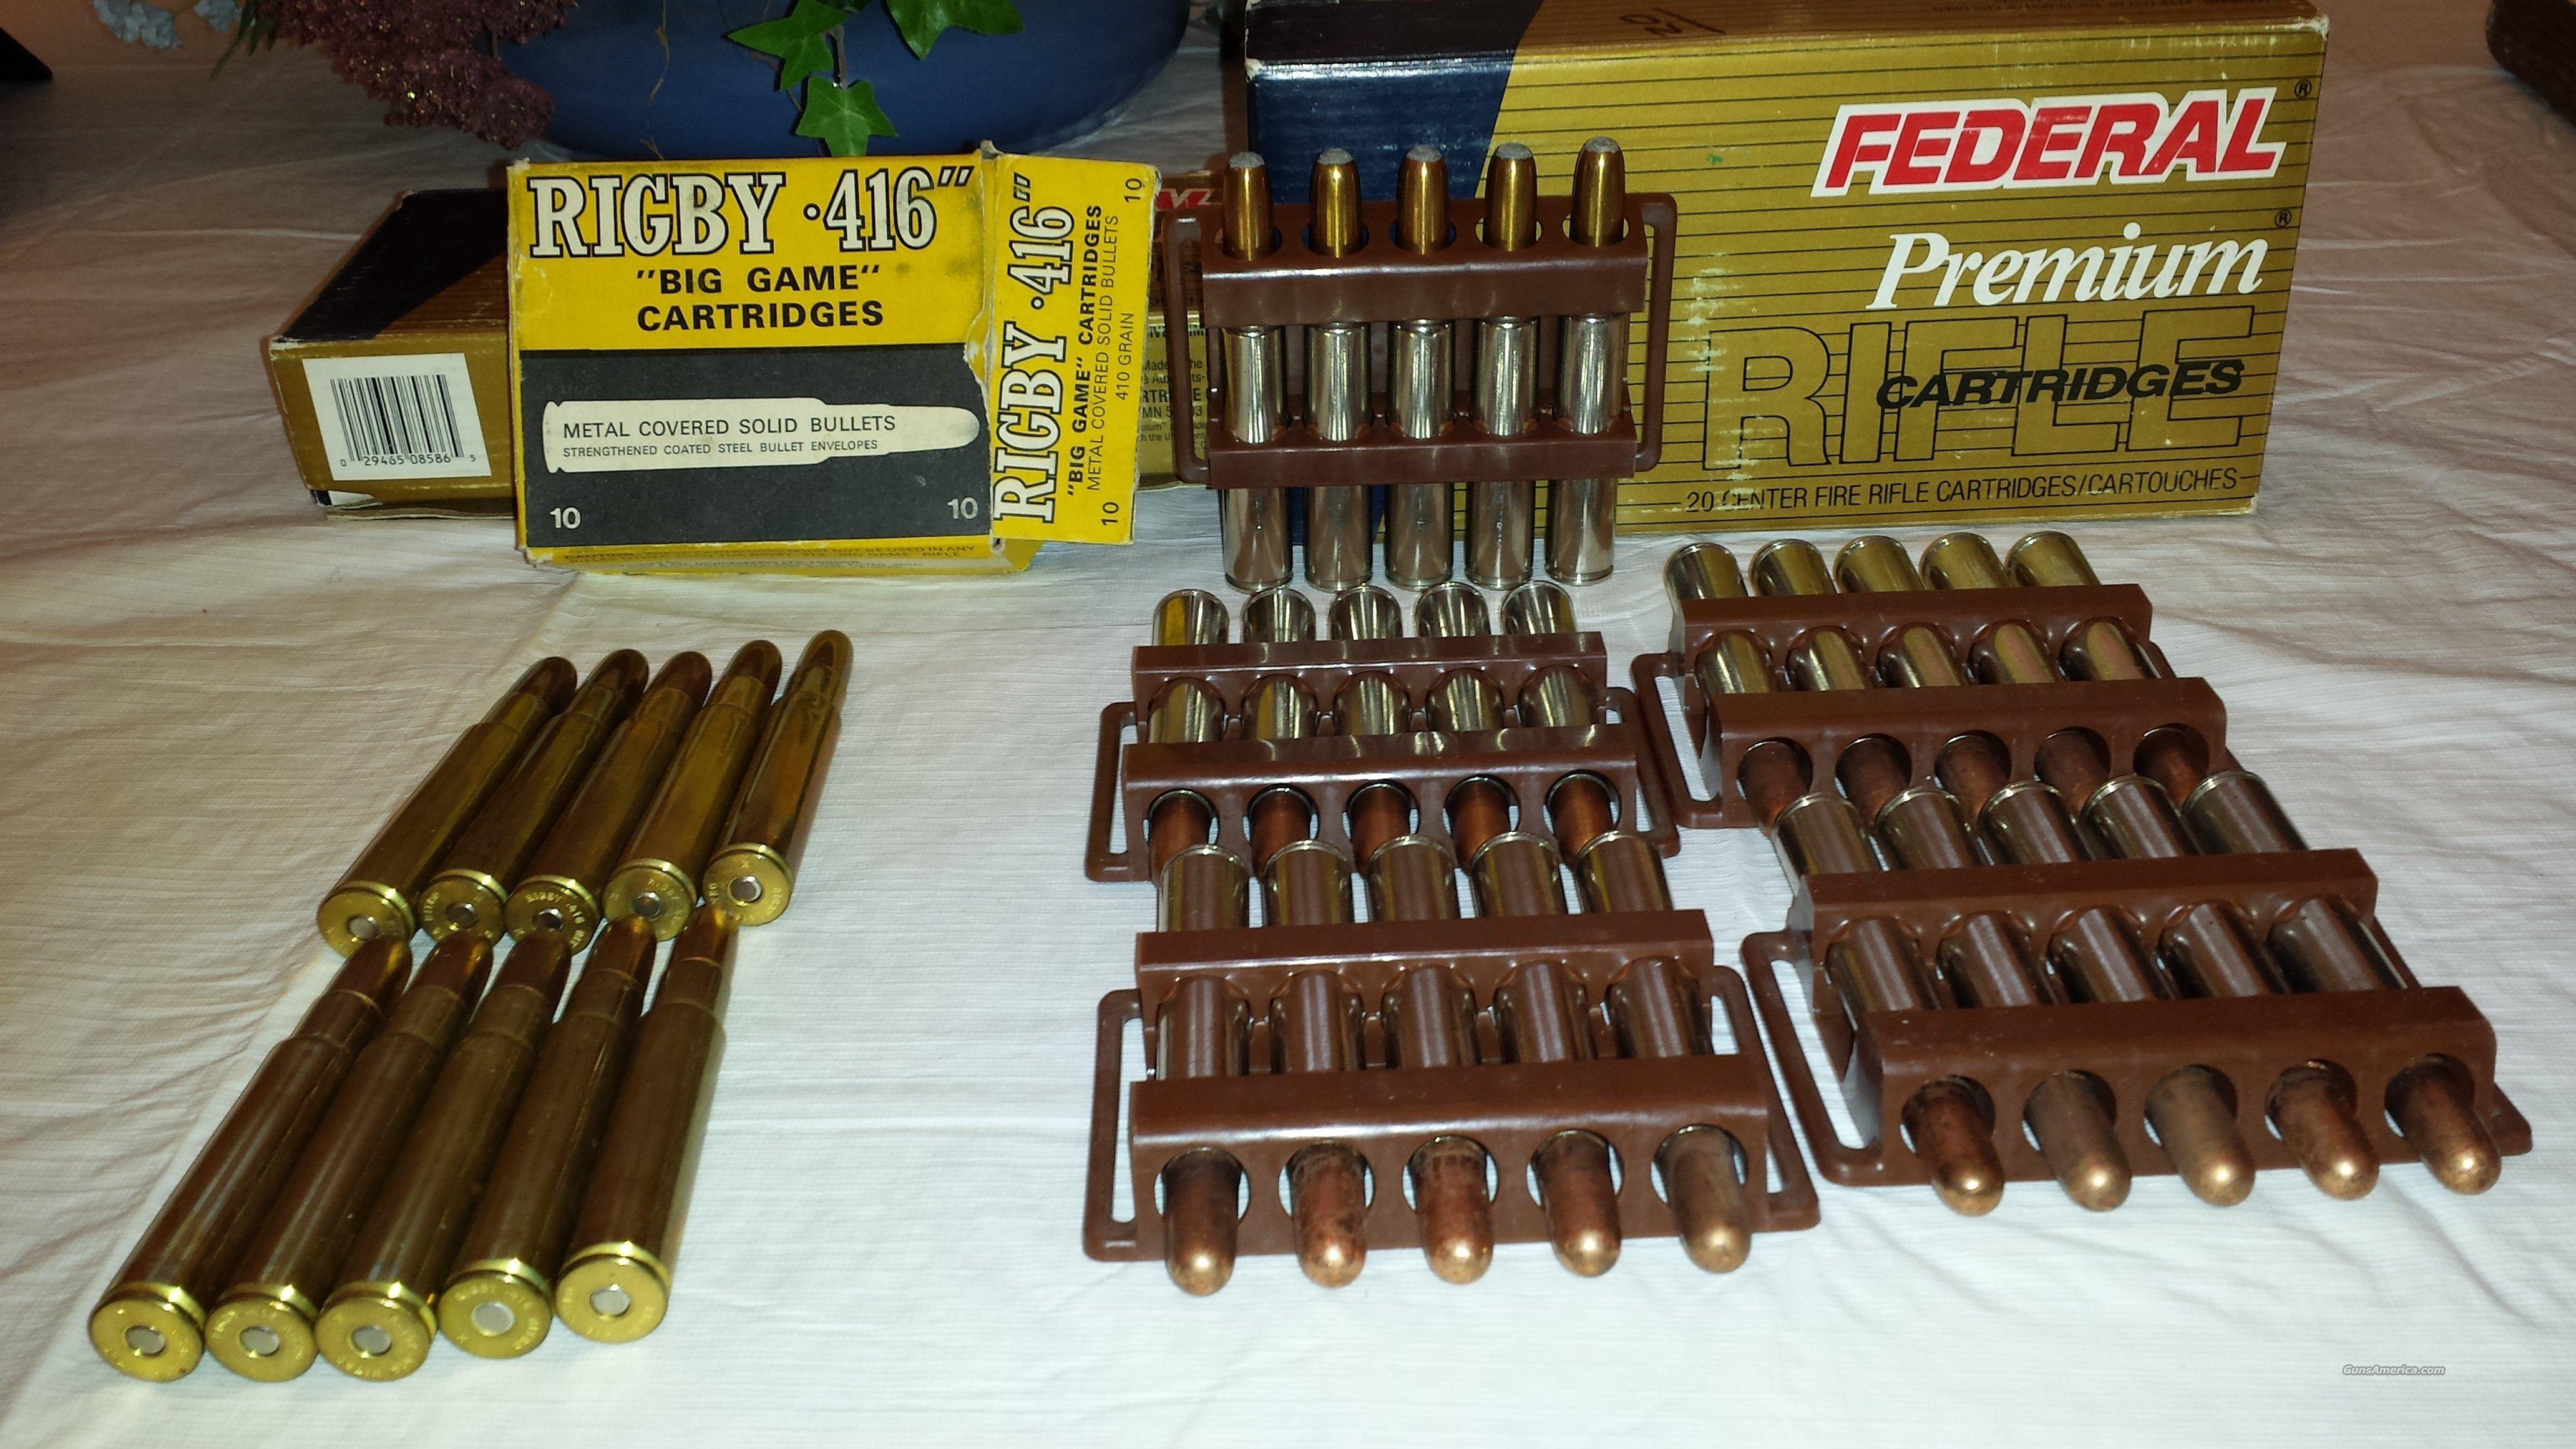 416 RIGBY (lot of 10 cartridges)